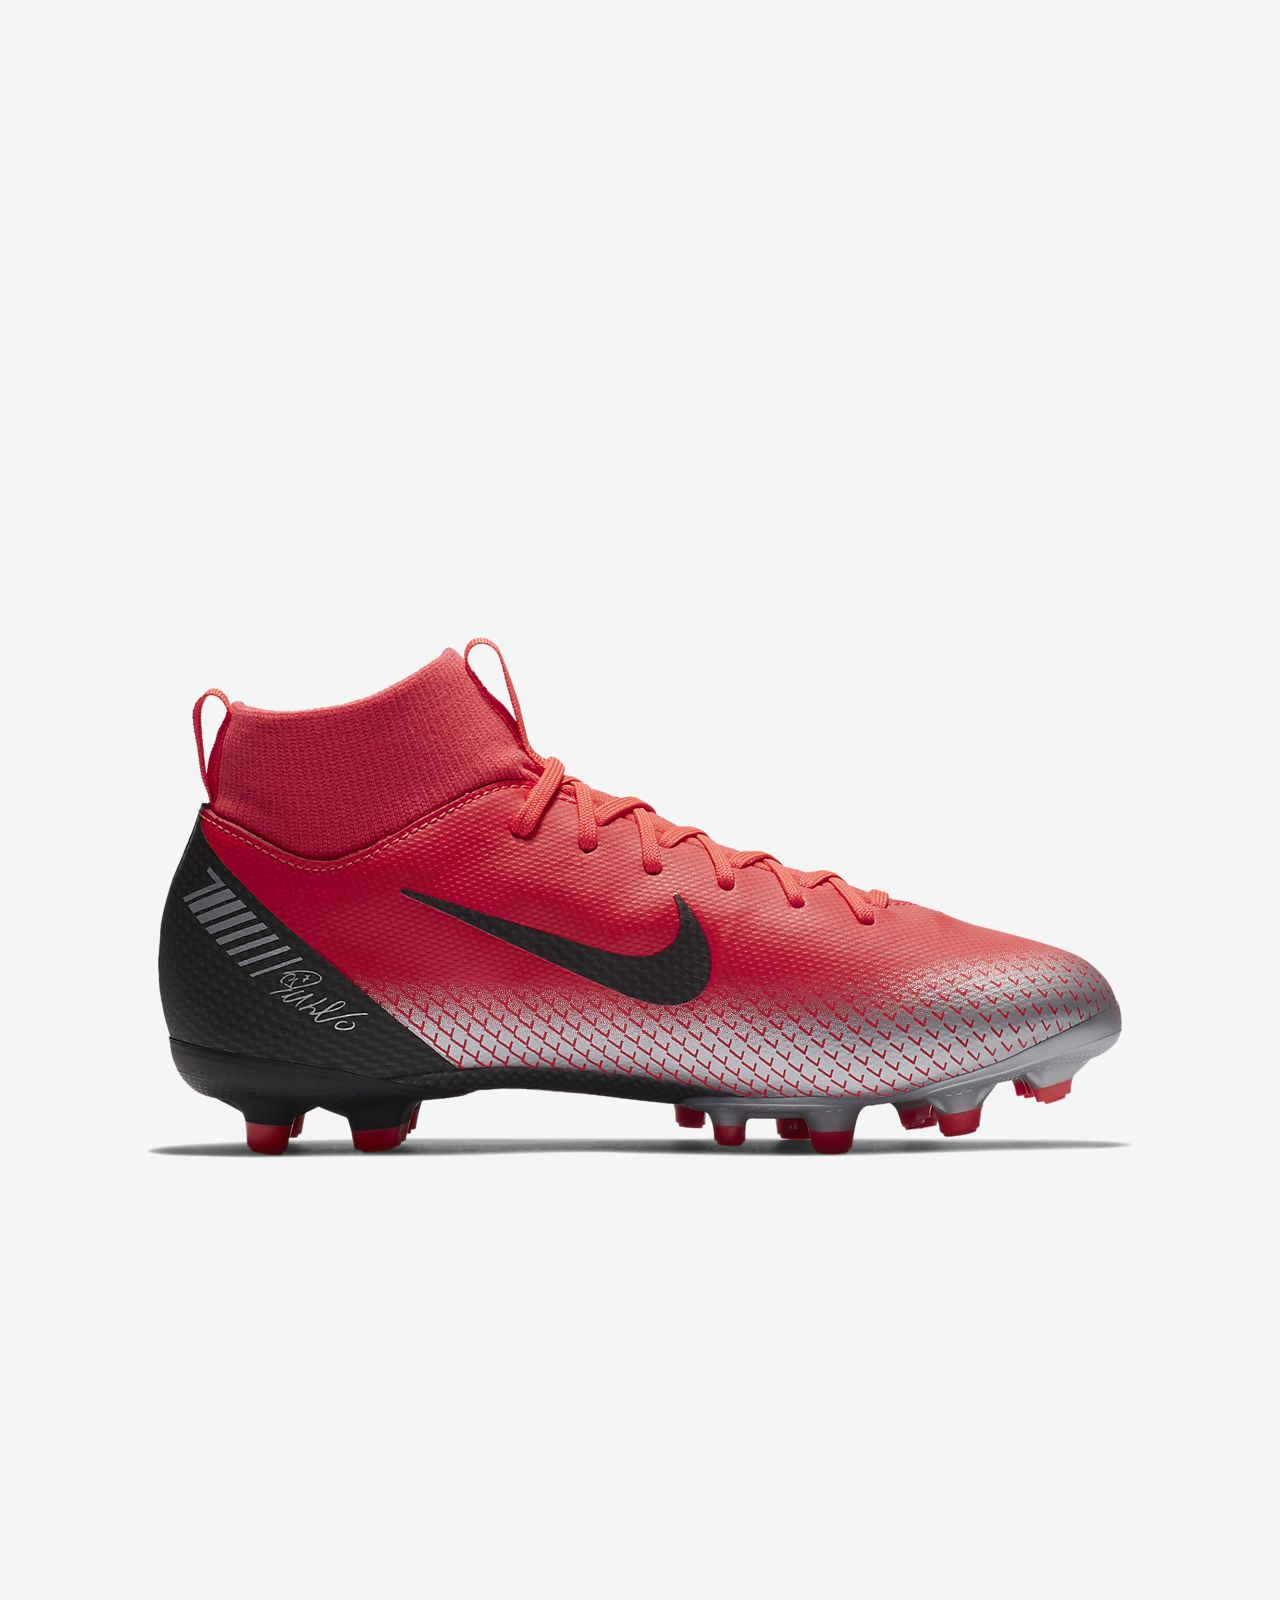 1187ed15fdf ... Nike Jr. Superfly 6 Academy MG Younger Older Kids  Multi-Ground Football